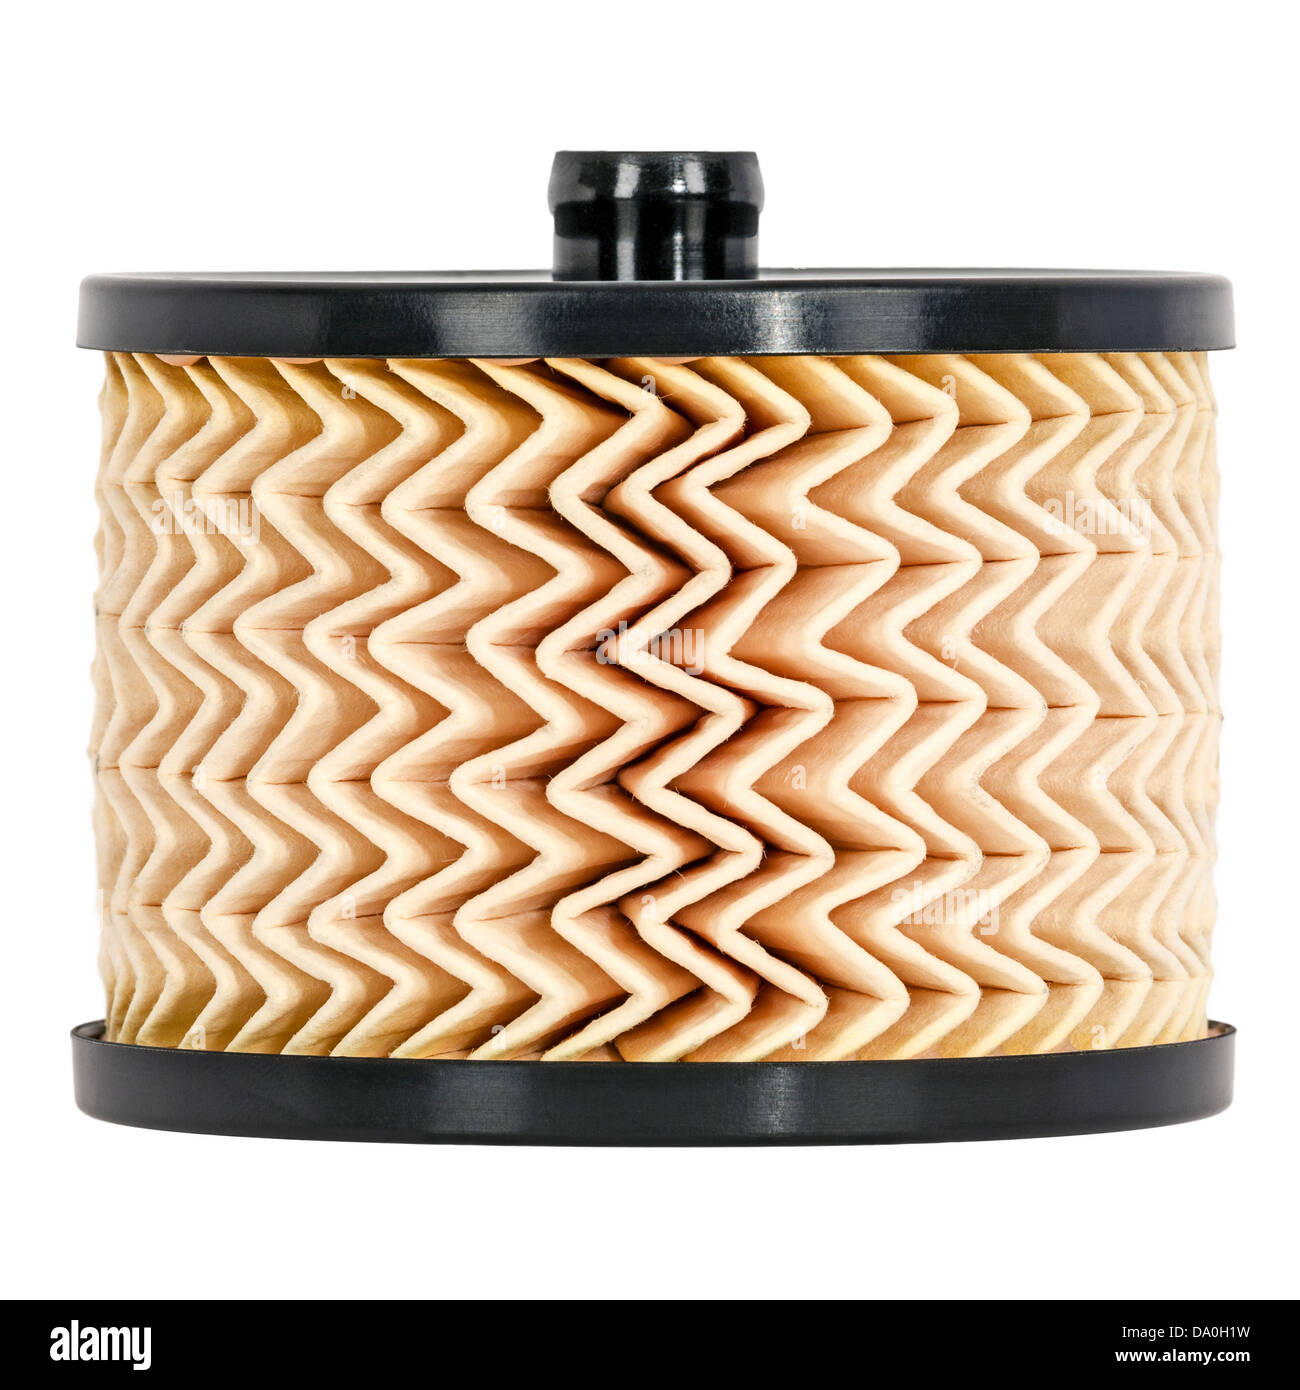 Replaceable fuel filter - Stock Image